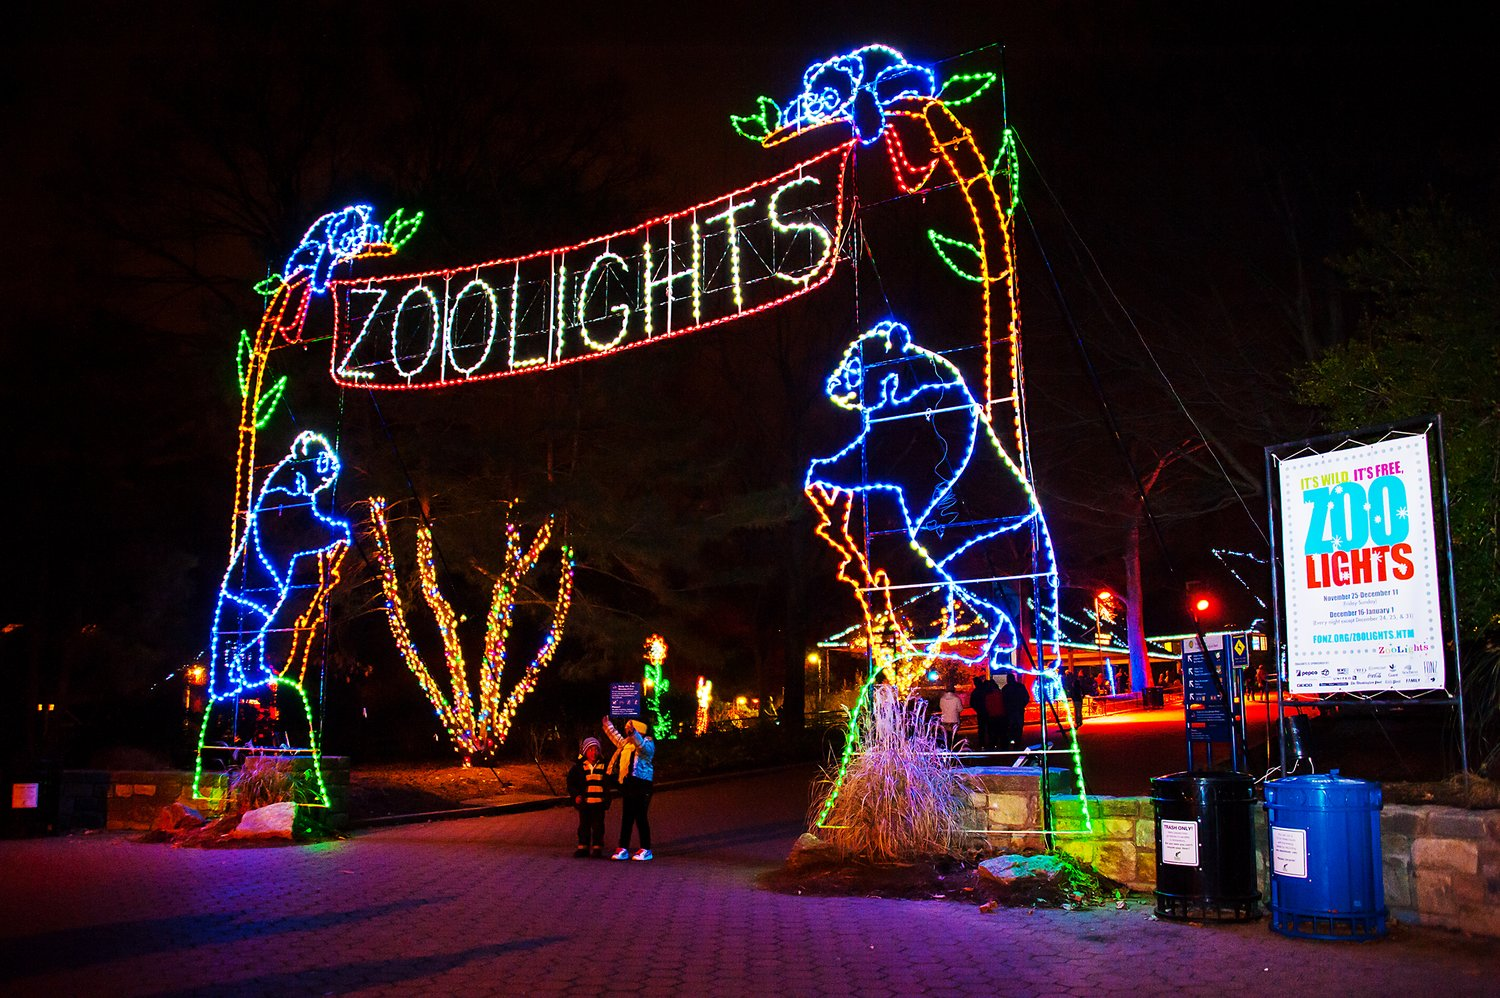 ZooLights includes live music, winter treats and opportunities for holiday shopping. Oh — and more than 500,000 LED lights decorate the zoo, transforming it into a winter wonderland.